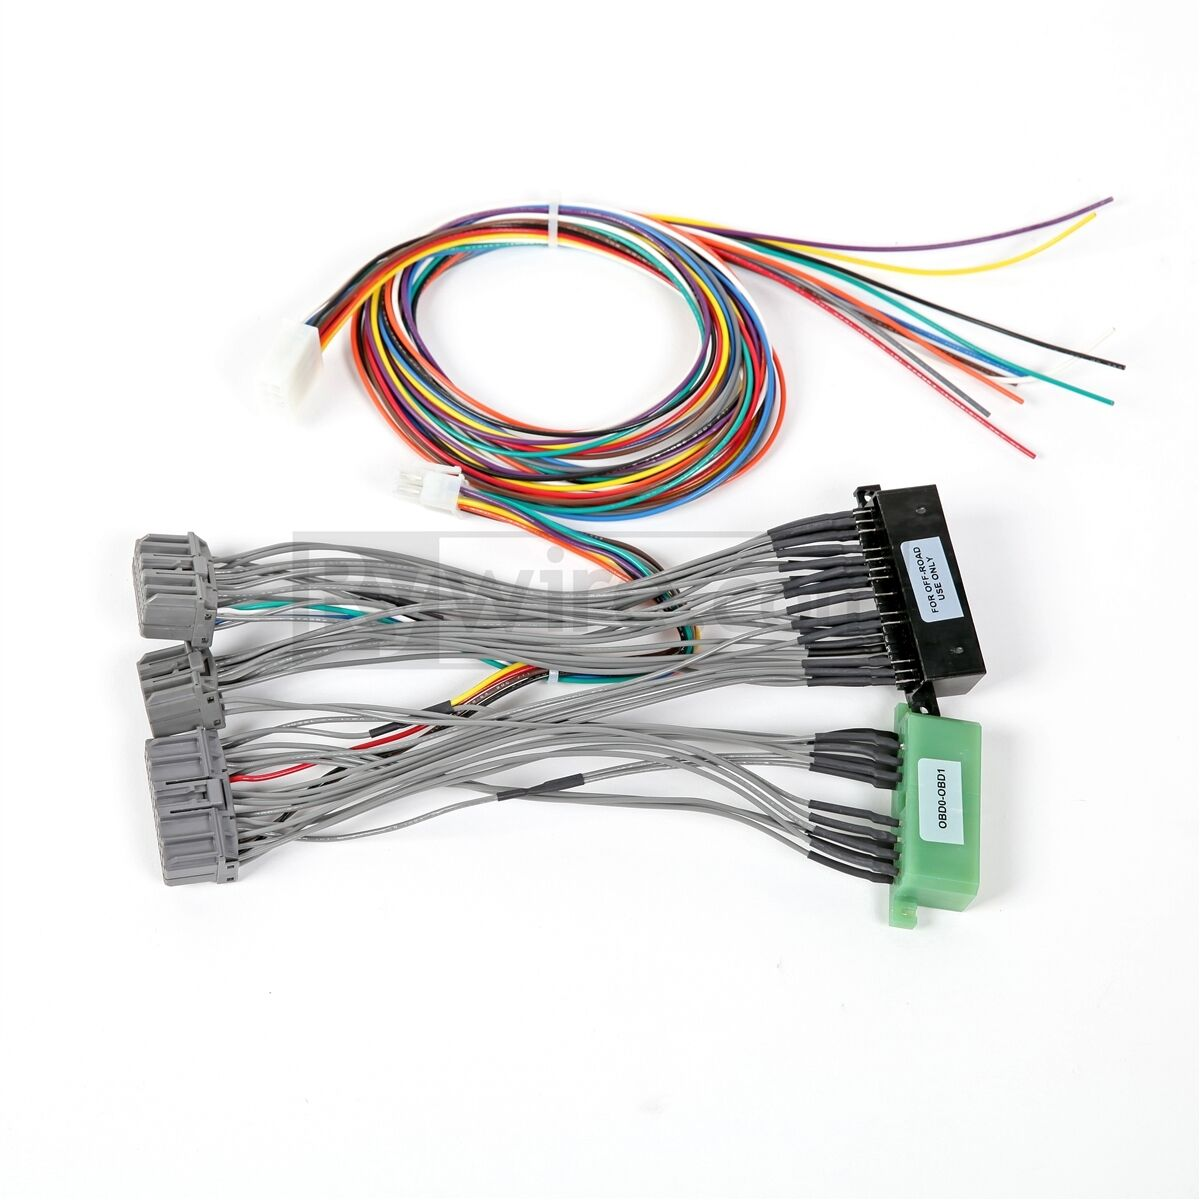 B18 Obd1 Wiring Harness Electrical Diagrams Rywire Obd0 To Ecu Conversion Civic Crx Integra B16 Wirining